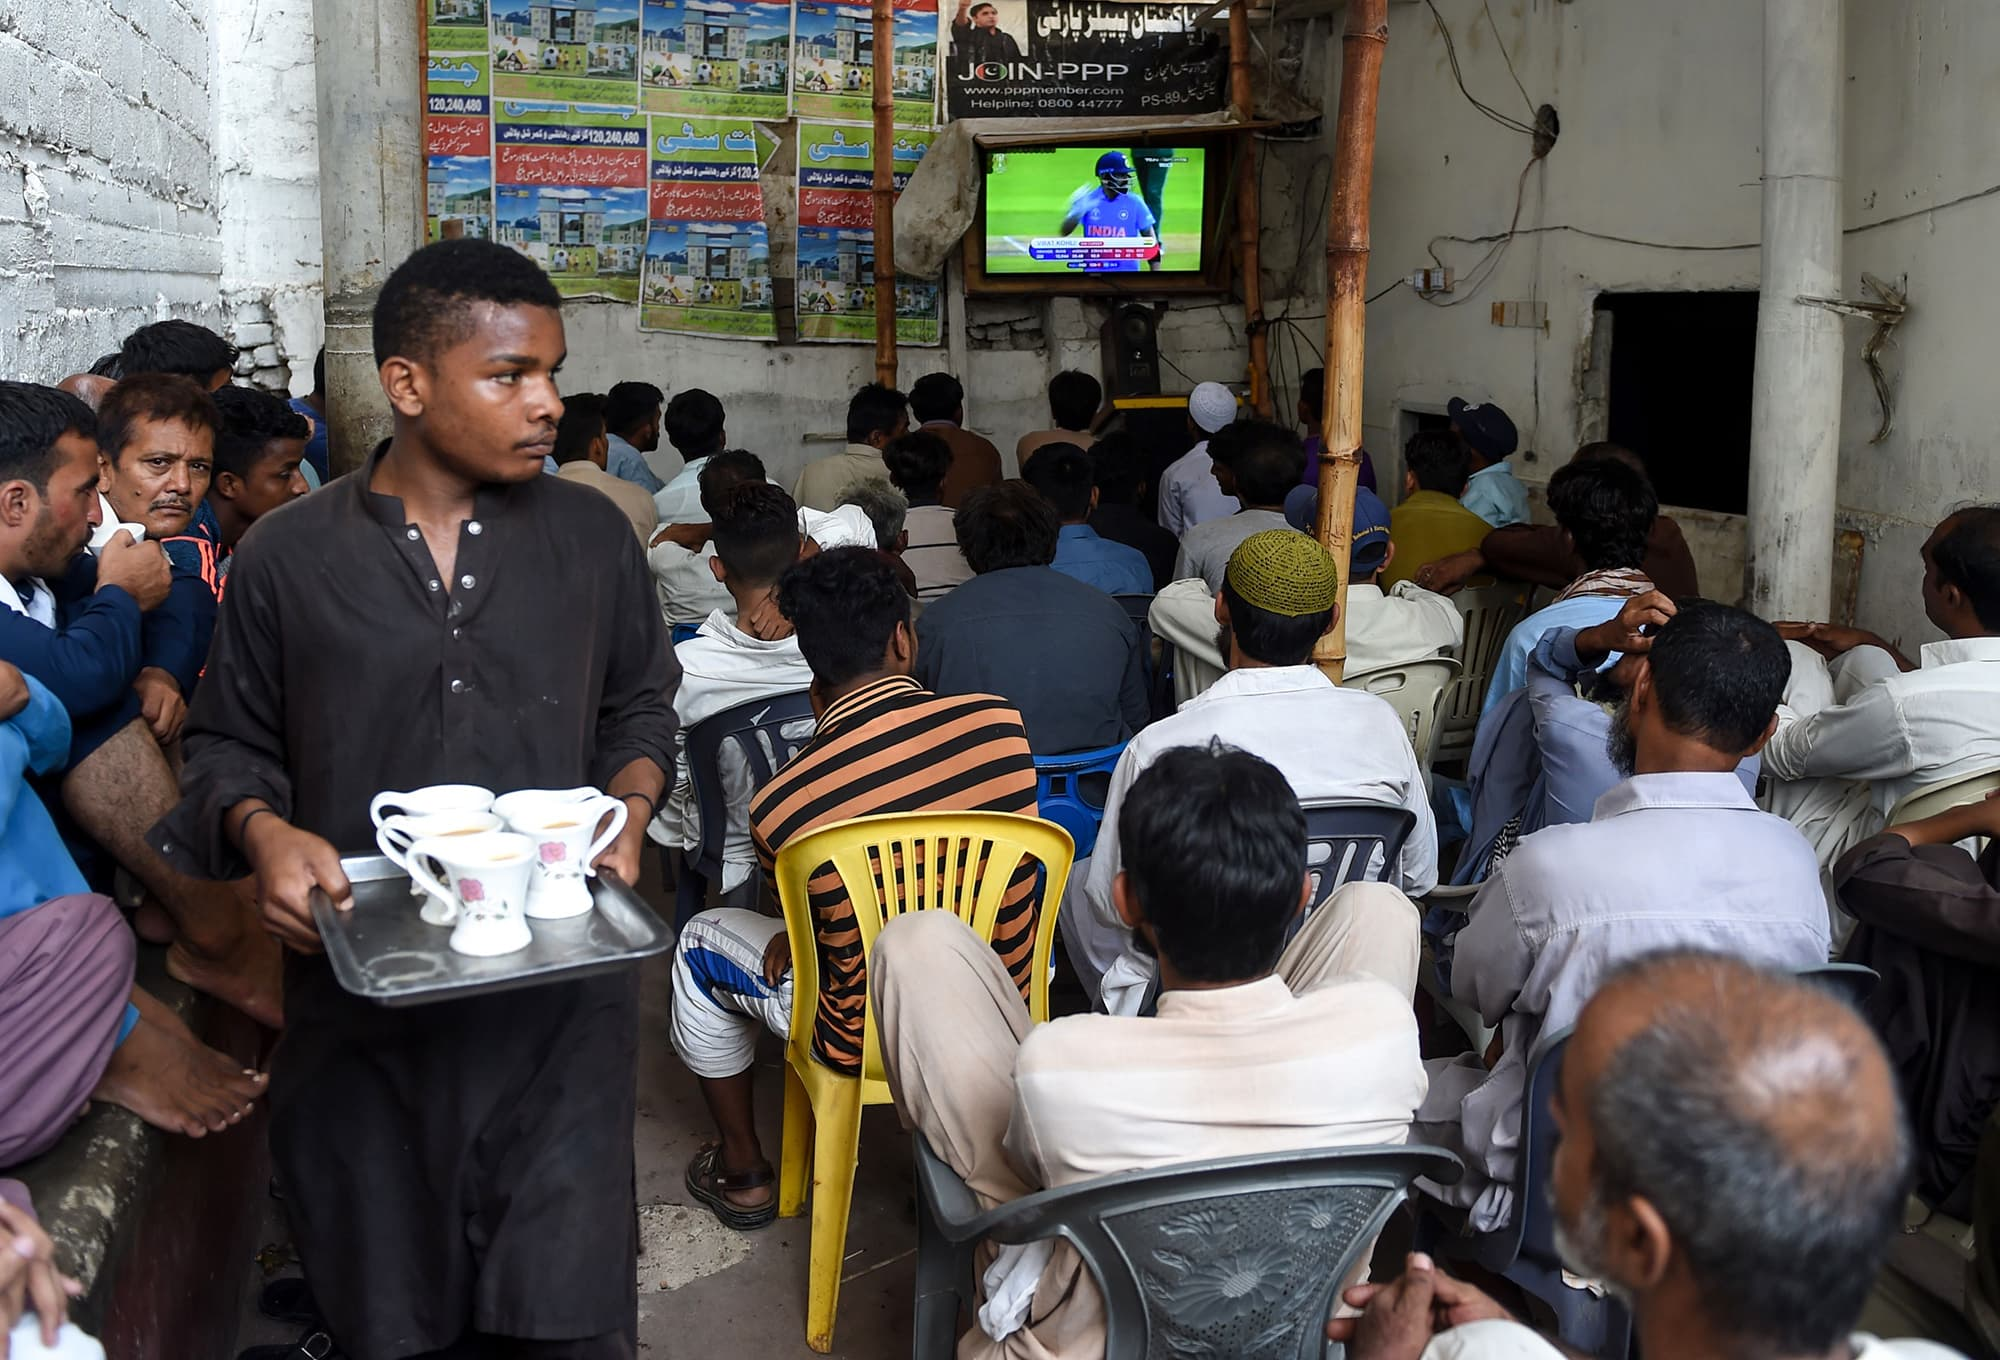 Pakistani people watch a live broadcast of the match on a television at a restaurant in Karachi. ─ AFP